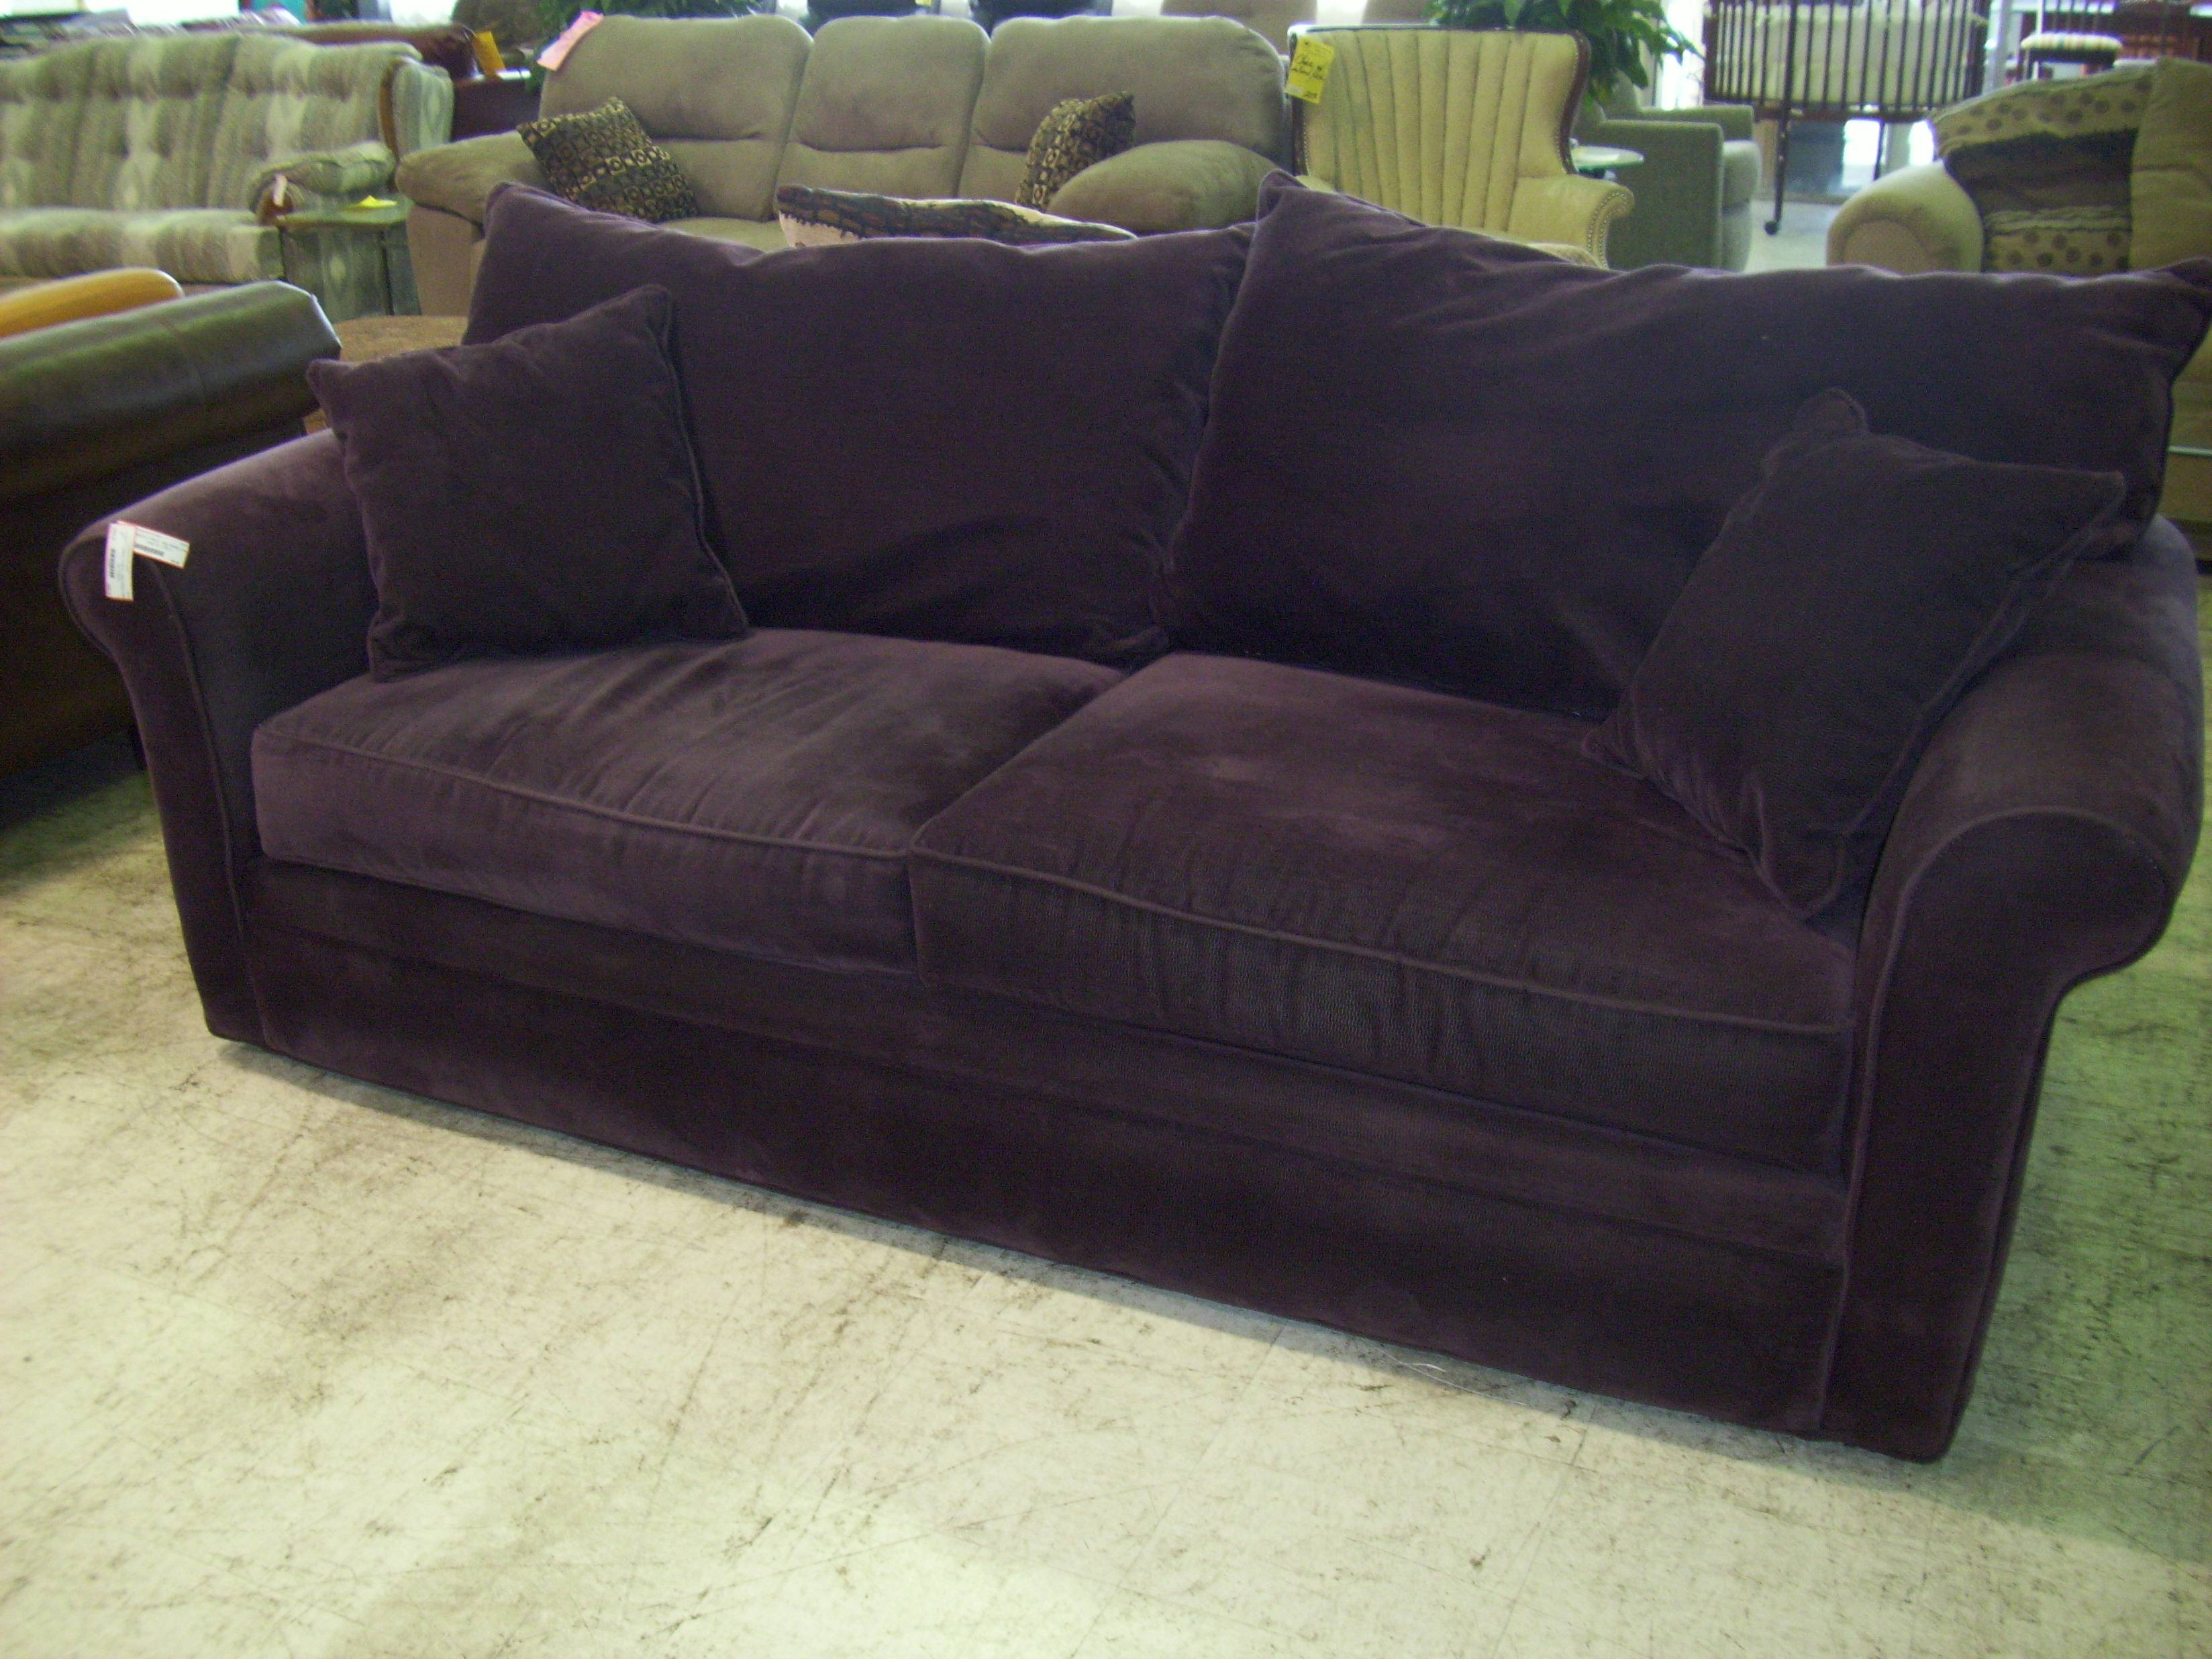 Inspiration Idea Alan White Sofa With Alan White Purple Sofa within Alan White Sofas (Image 12 of 15)